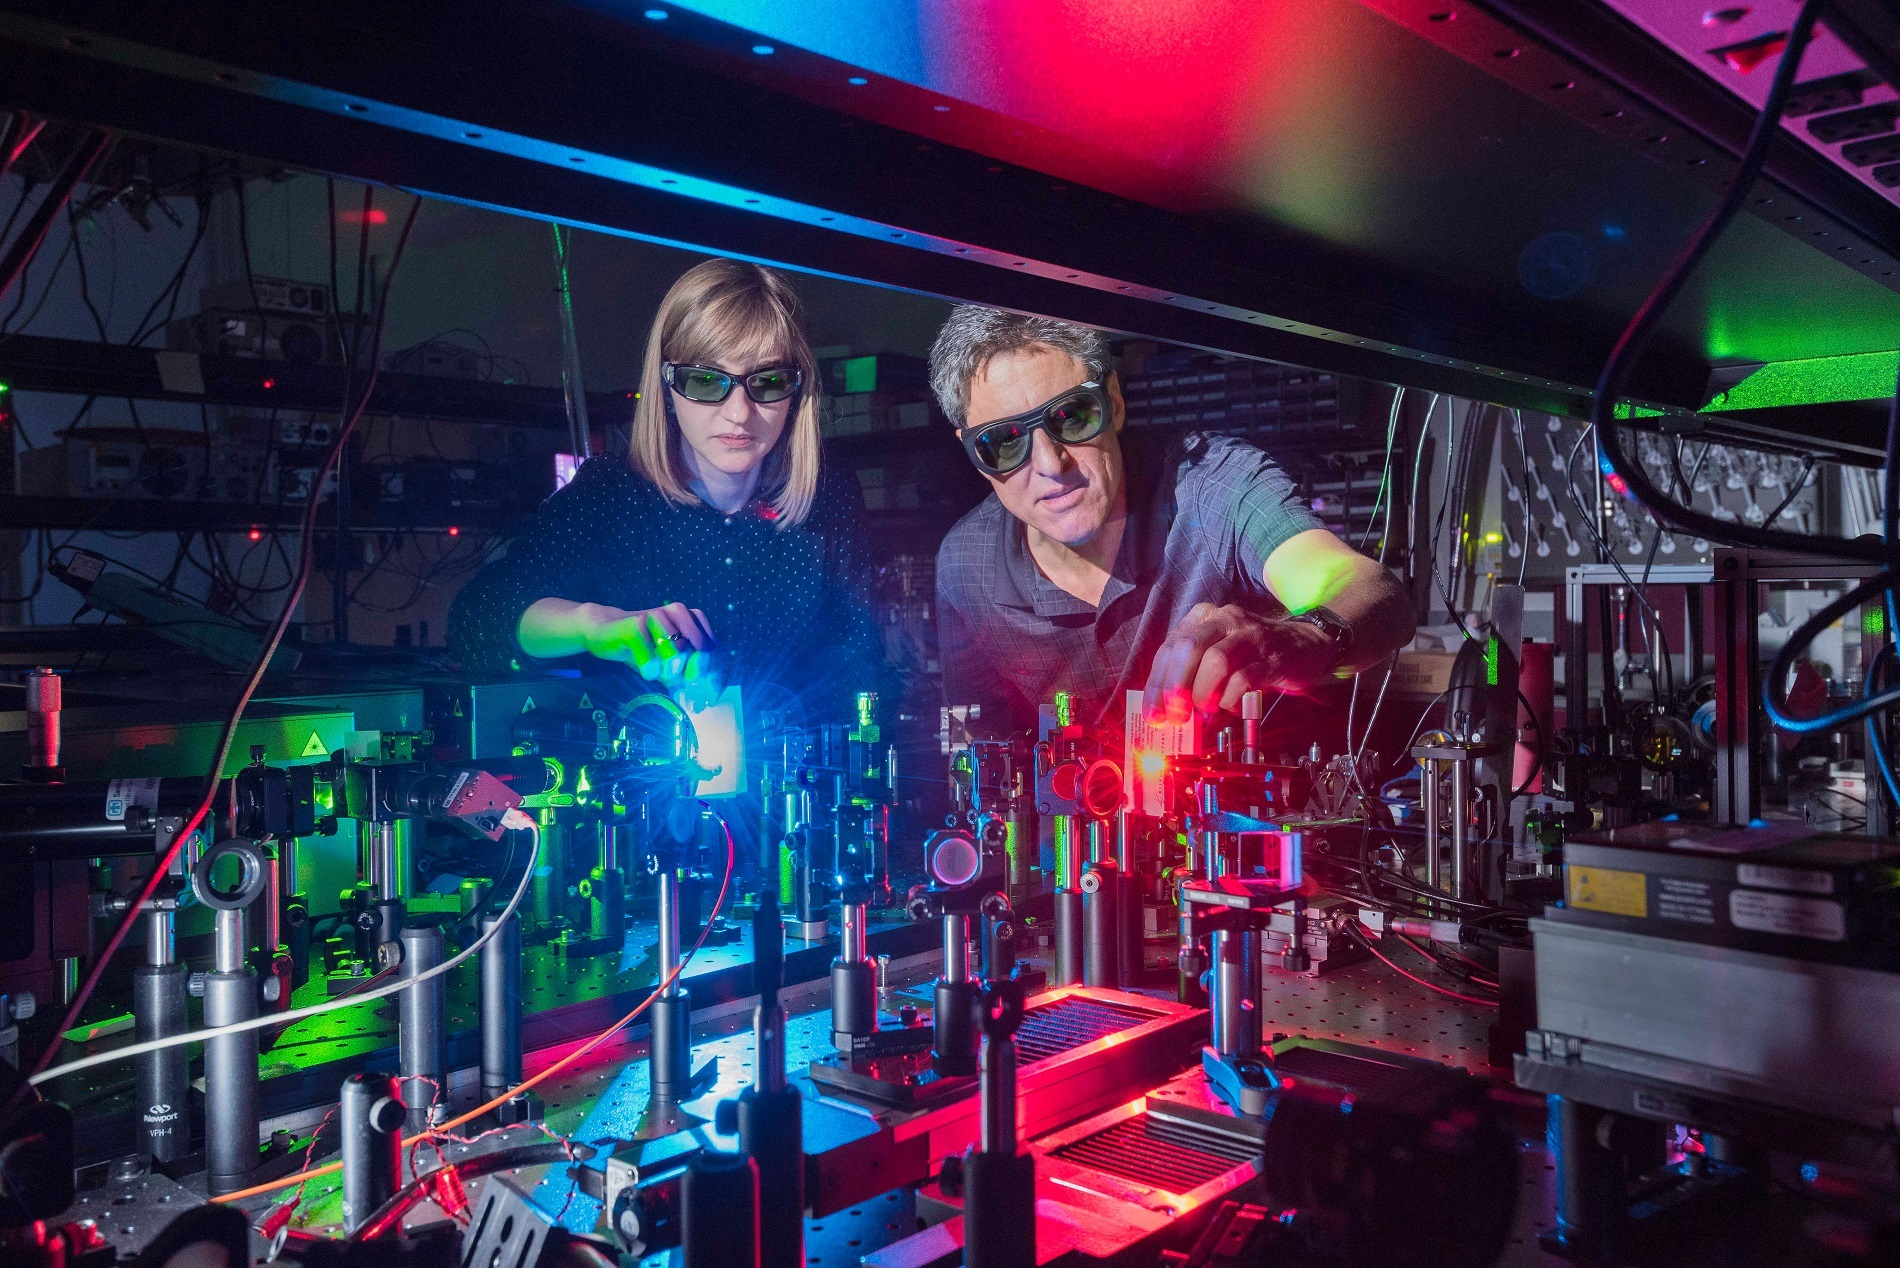 Sandia National Laboratories postdoctoral appointee Polina Vabishchevich, left; and Senior Scientist Igal Brener made a metamaterial that mixes two lasers to produce 11 colors ranging from the near infrared, through the colors of the rainbow, to ultraviolet